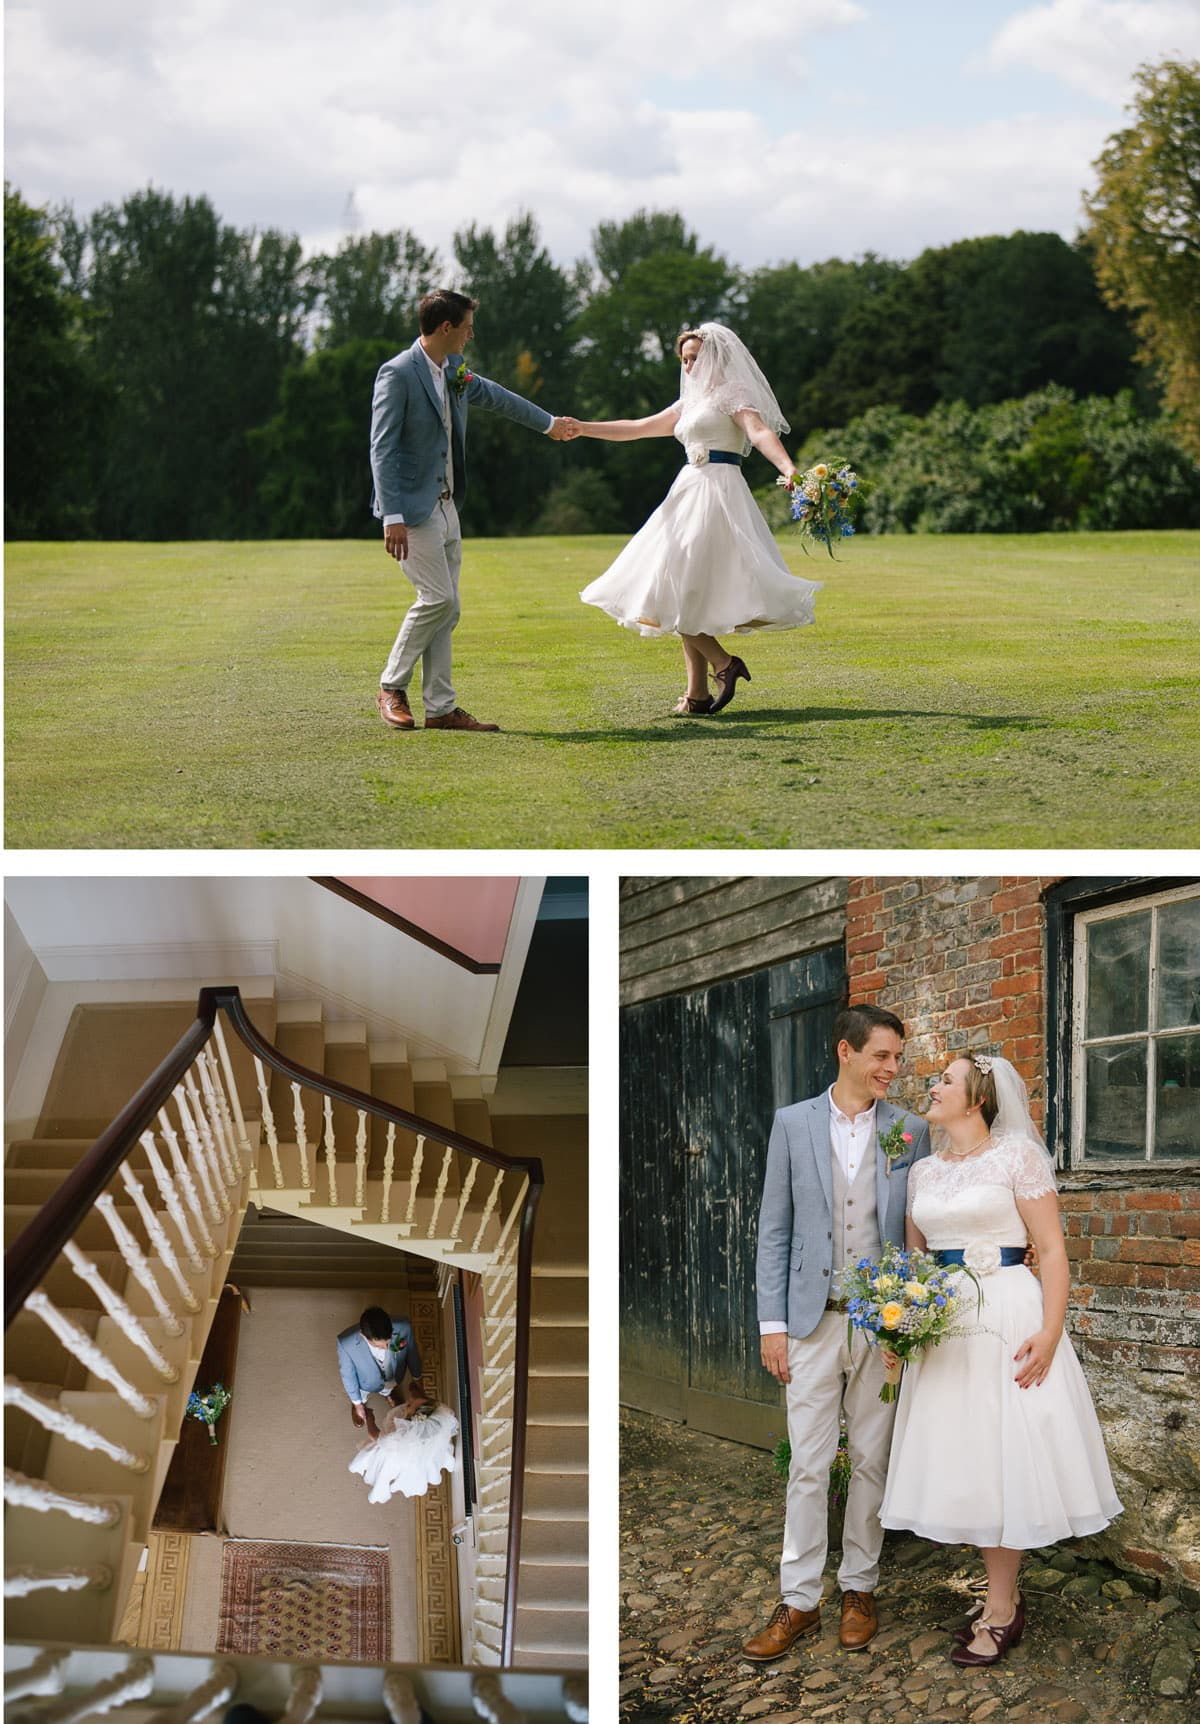 Clockwise from left: A view from above looking down the staircase as the bride and groom greet each other; bride Julia shows off her twirls in her 50s style wedding dress; the couple gaze at each other and grin